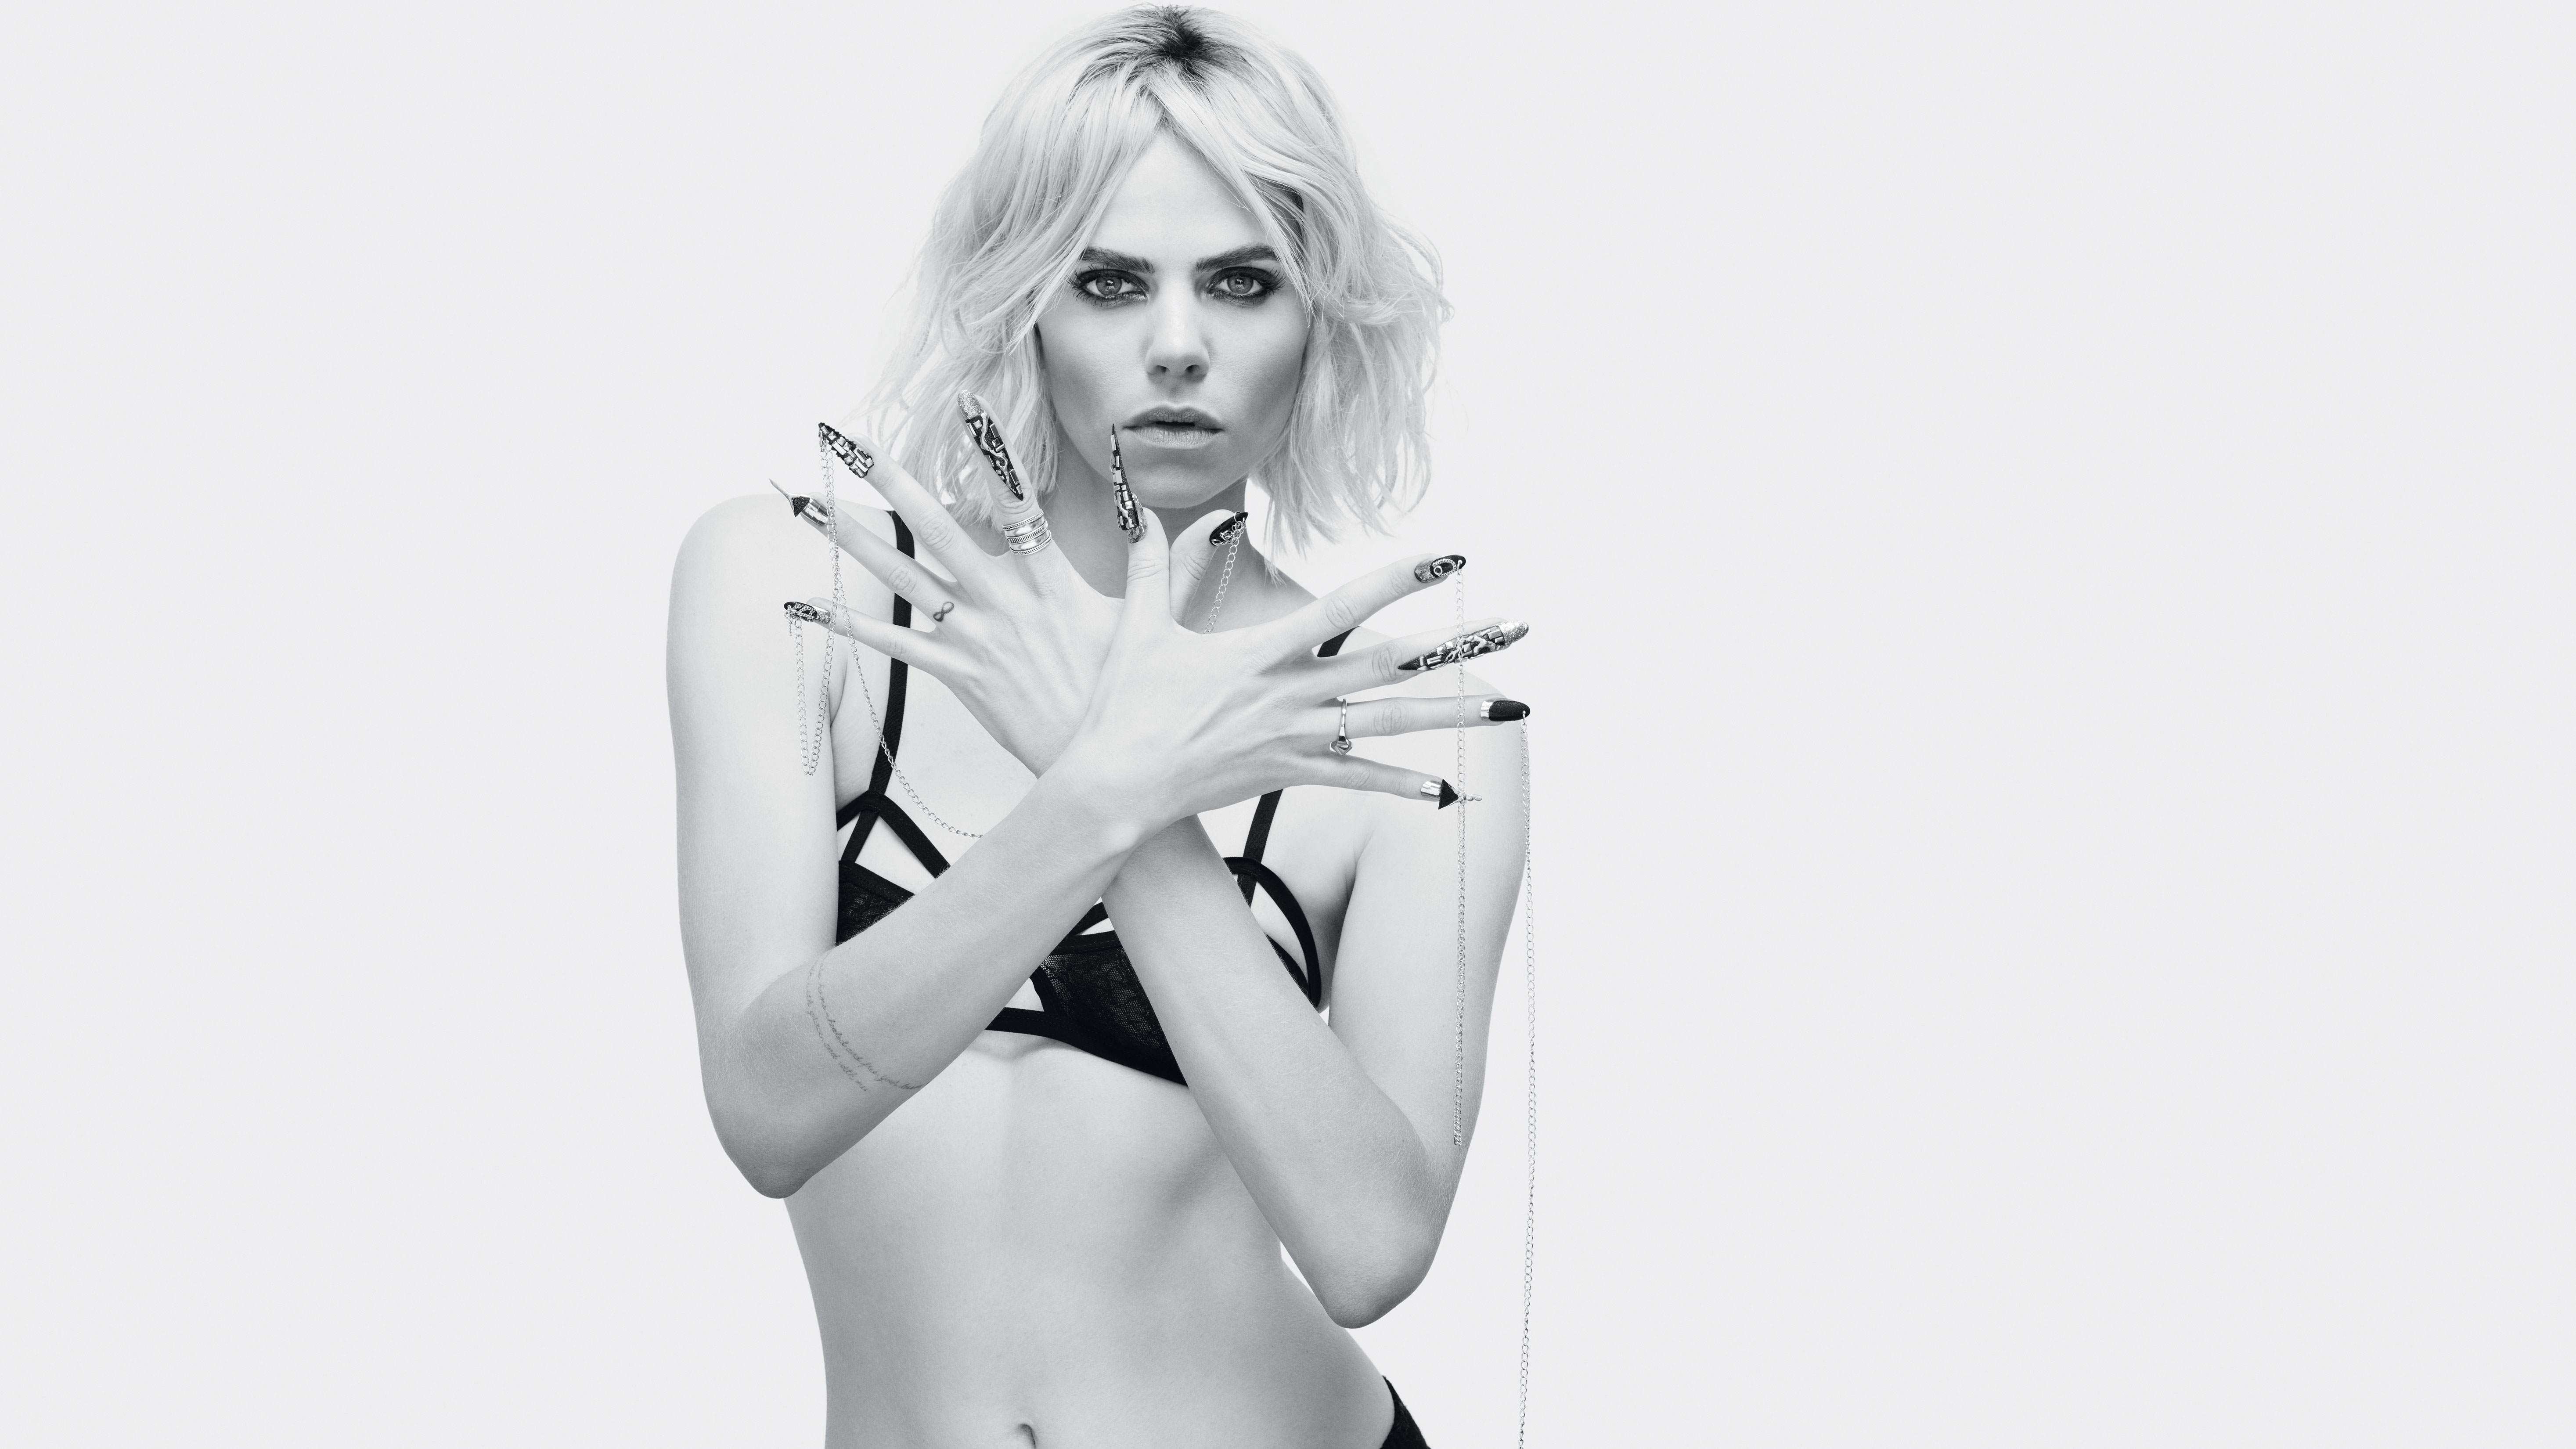 The longest over-the-top nails, which were seen on the runway for fall at Libertine, were created with Liquid & Powder, Brisa Gel, Shellac and Vinylux Weekly Polish. Shark teeth were fashioned with Liquid & Powder, while drips were made of Brisa Gel. Metal plates were affixed, nails pierced, chains attached. Now she's really ready for les liaisons dangereuses.